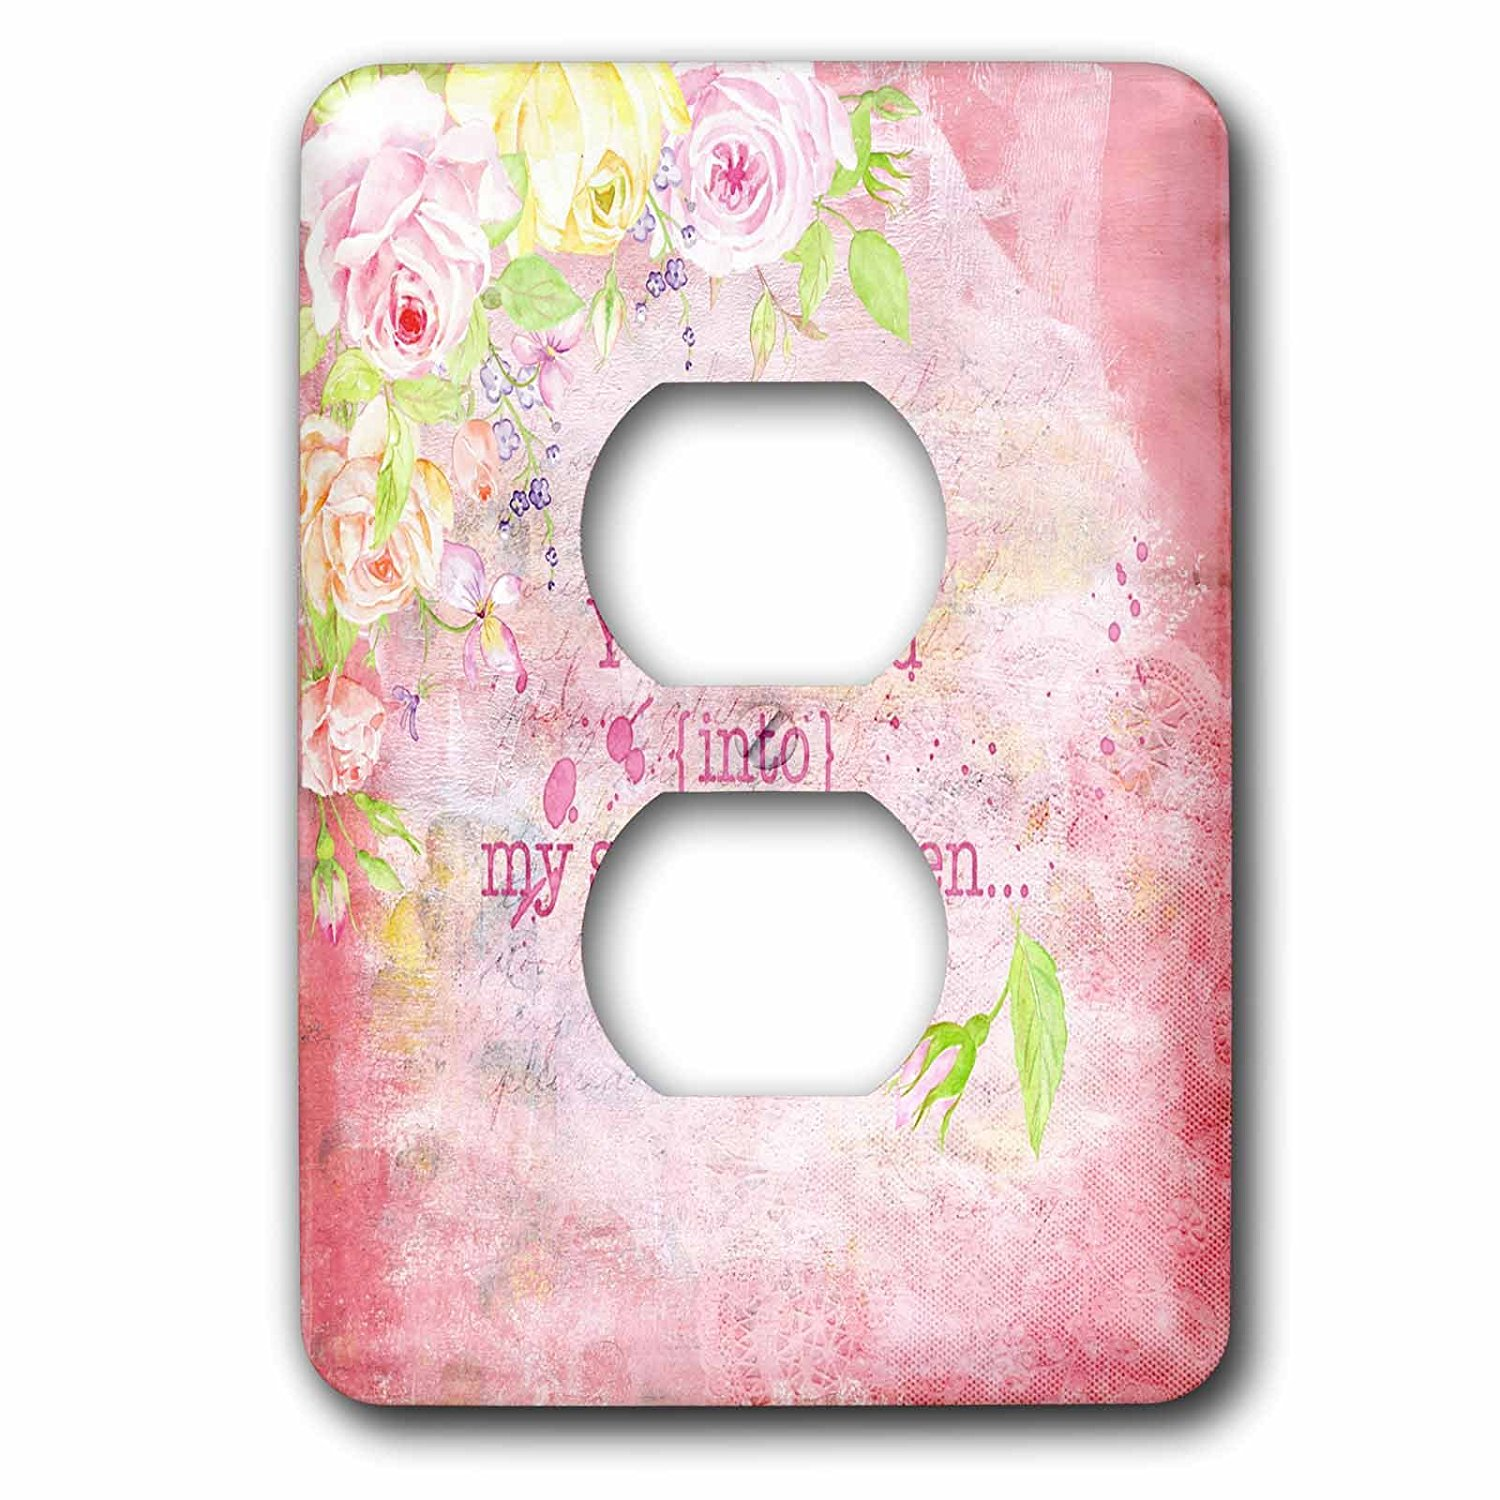 3dRose cst/_56631/_3 Shabby Chic Light Pink Roses Vintage Floral Pattern on White Ceramic Tile Coasters Set of 4